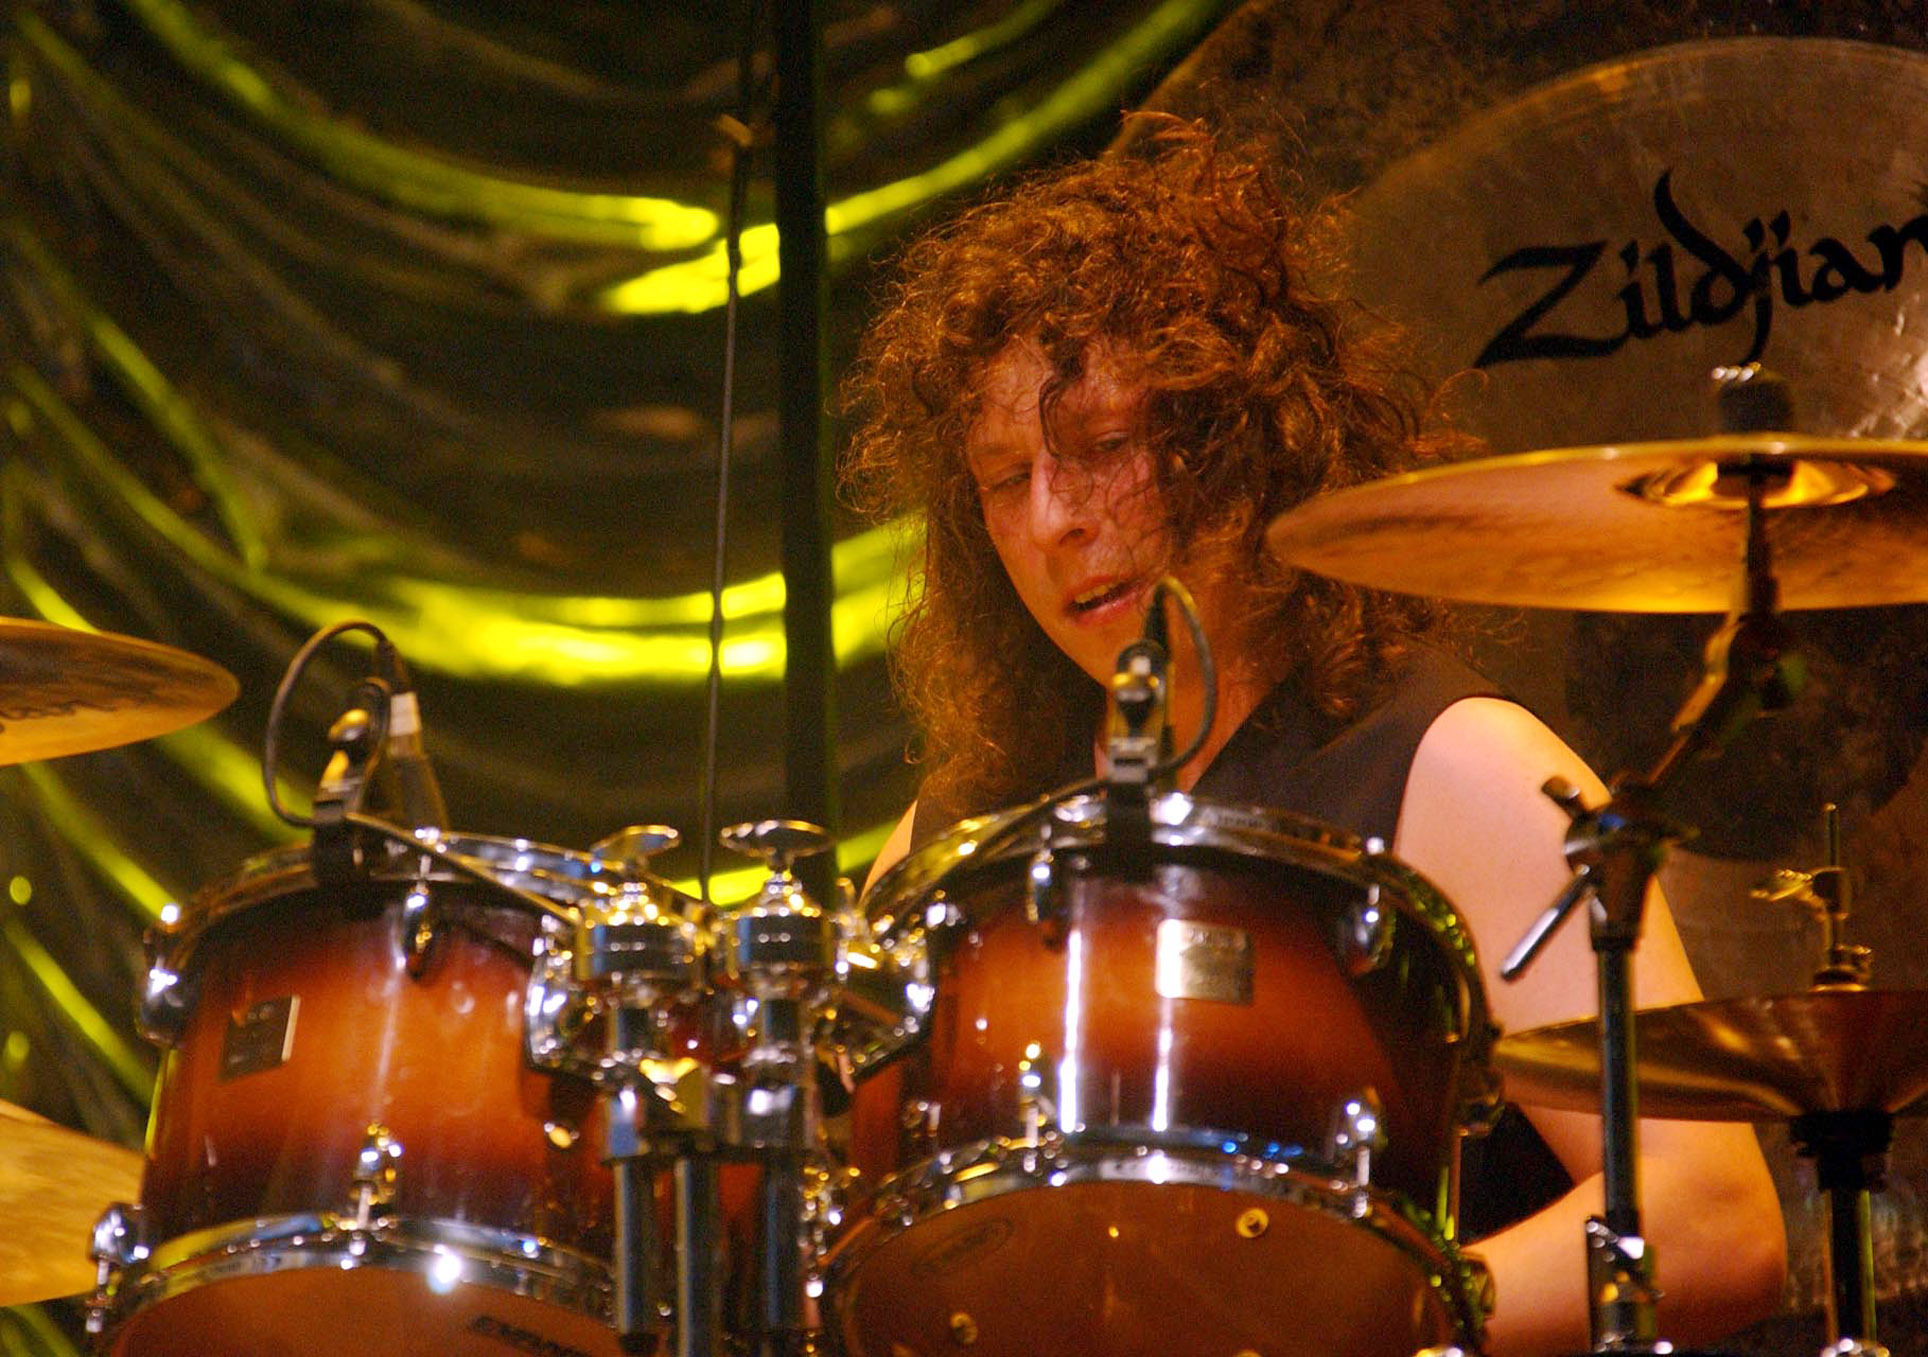 Stereophonics' late drummer Stuart Cable in 2002